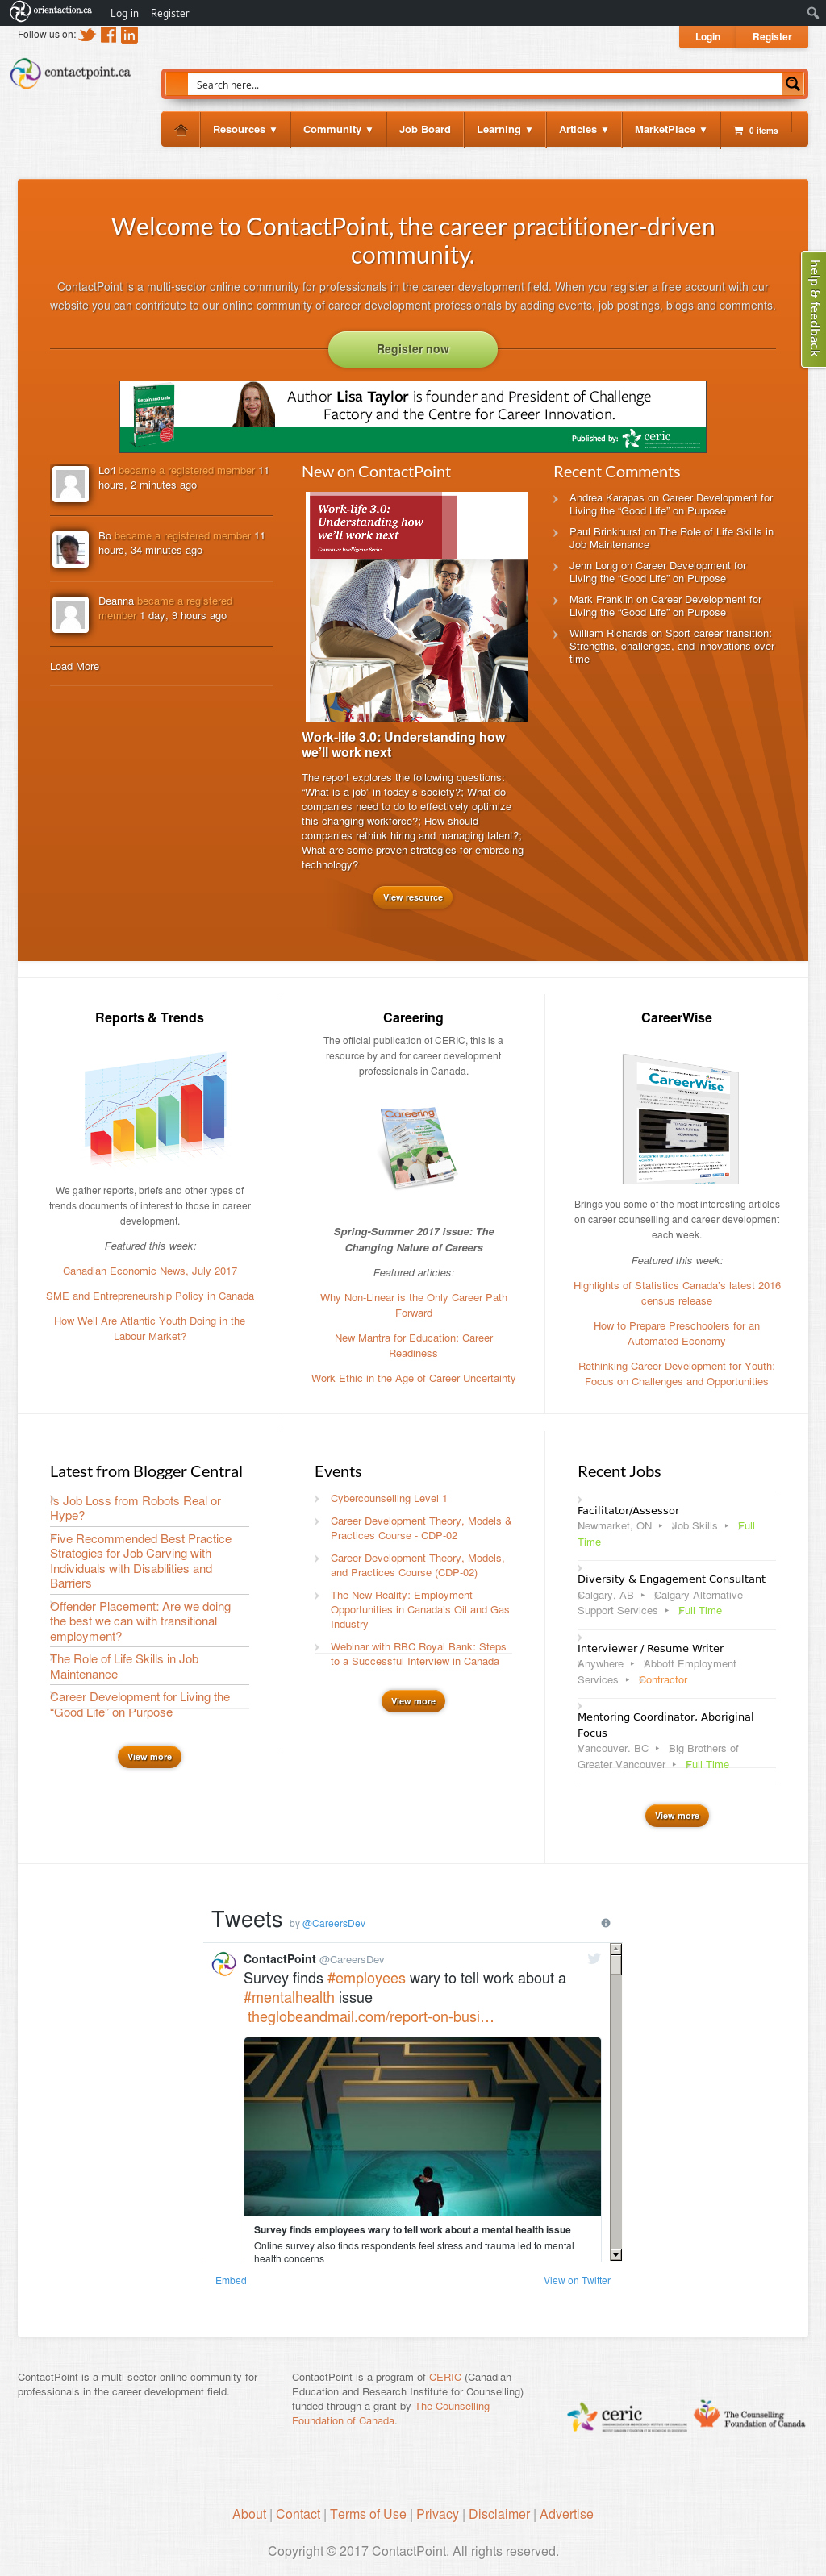 contactpoint website history